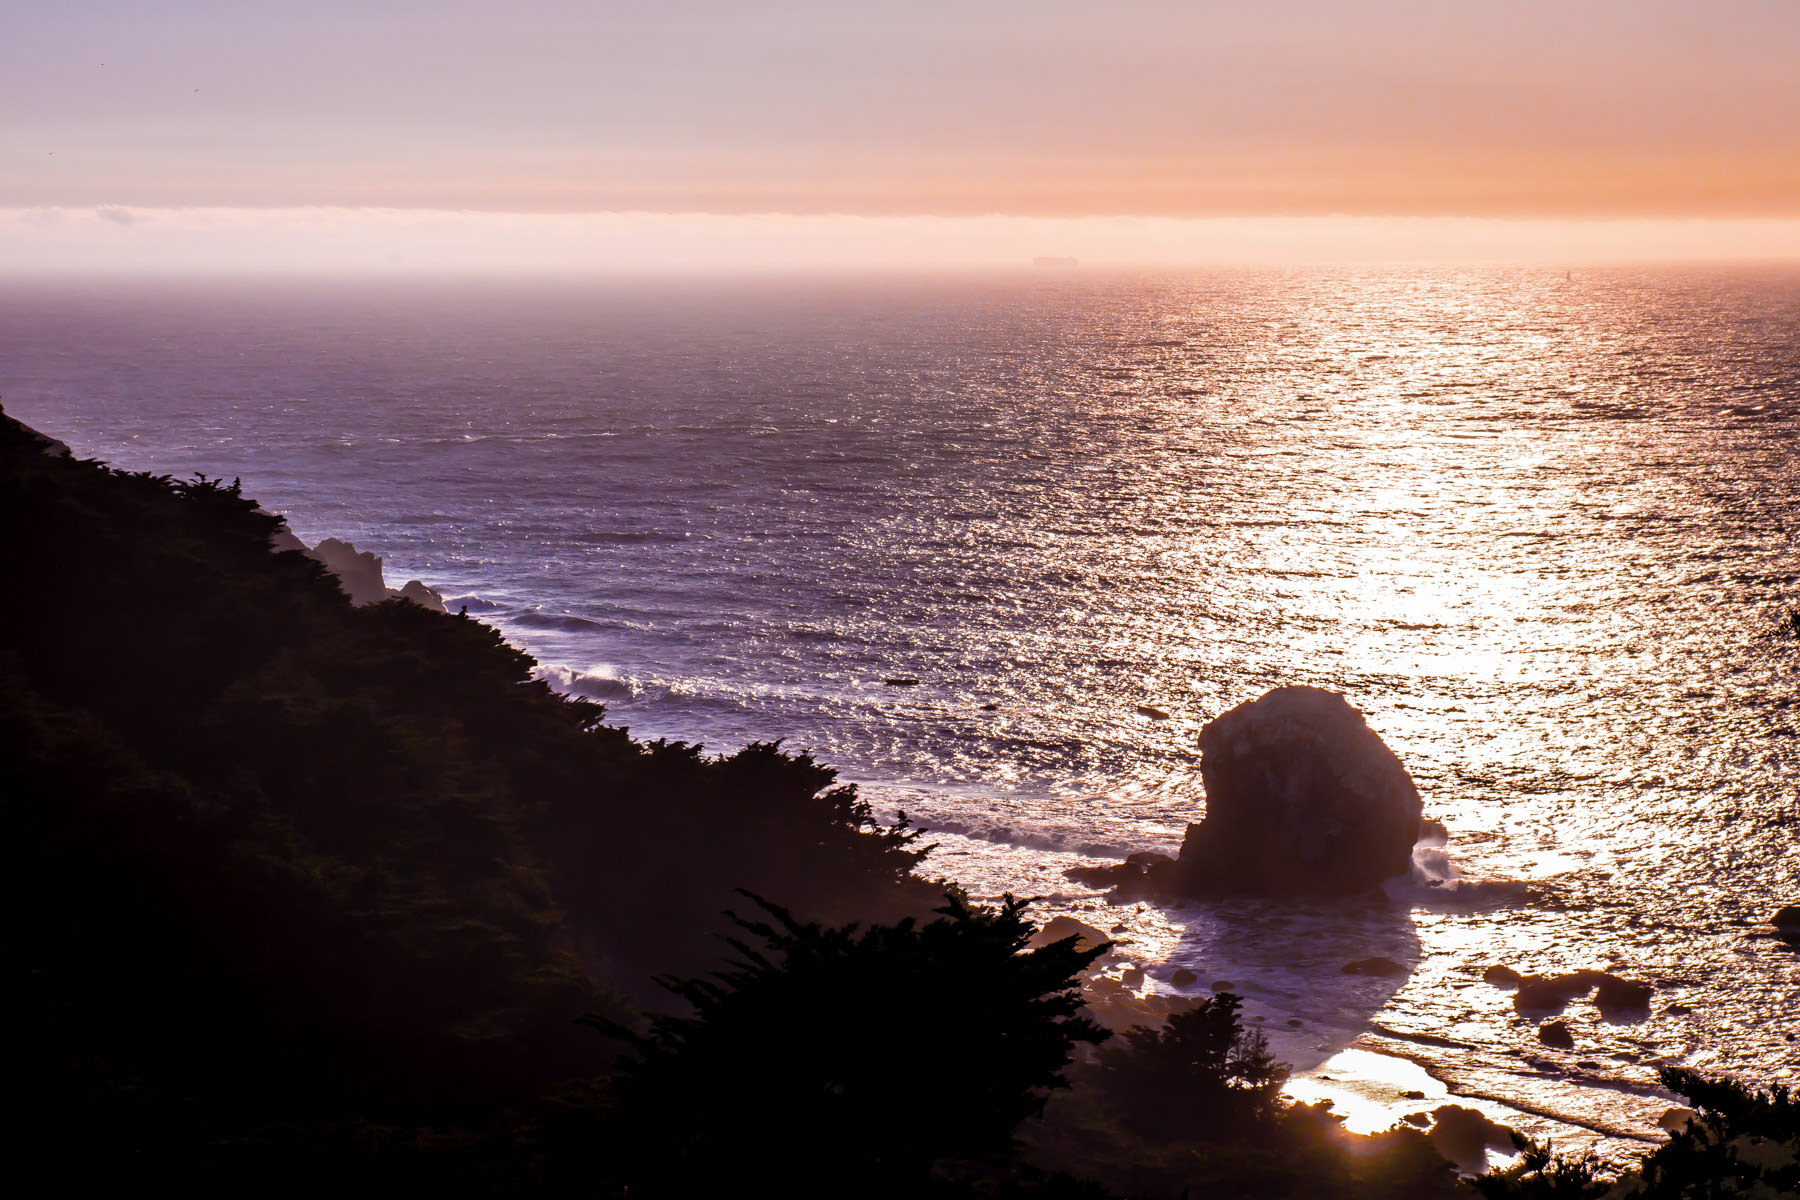 The late-evening sun silhouettes the rocky tree-covered Pacific Ocean shoreline of San Francisco's Lands End on the western edge of the city.